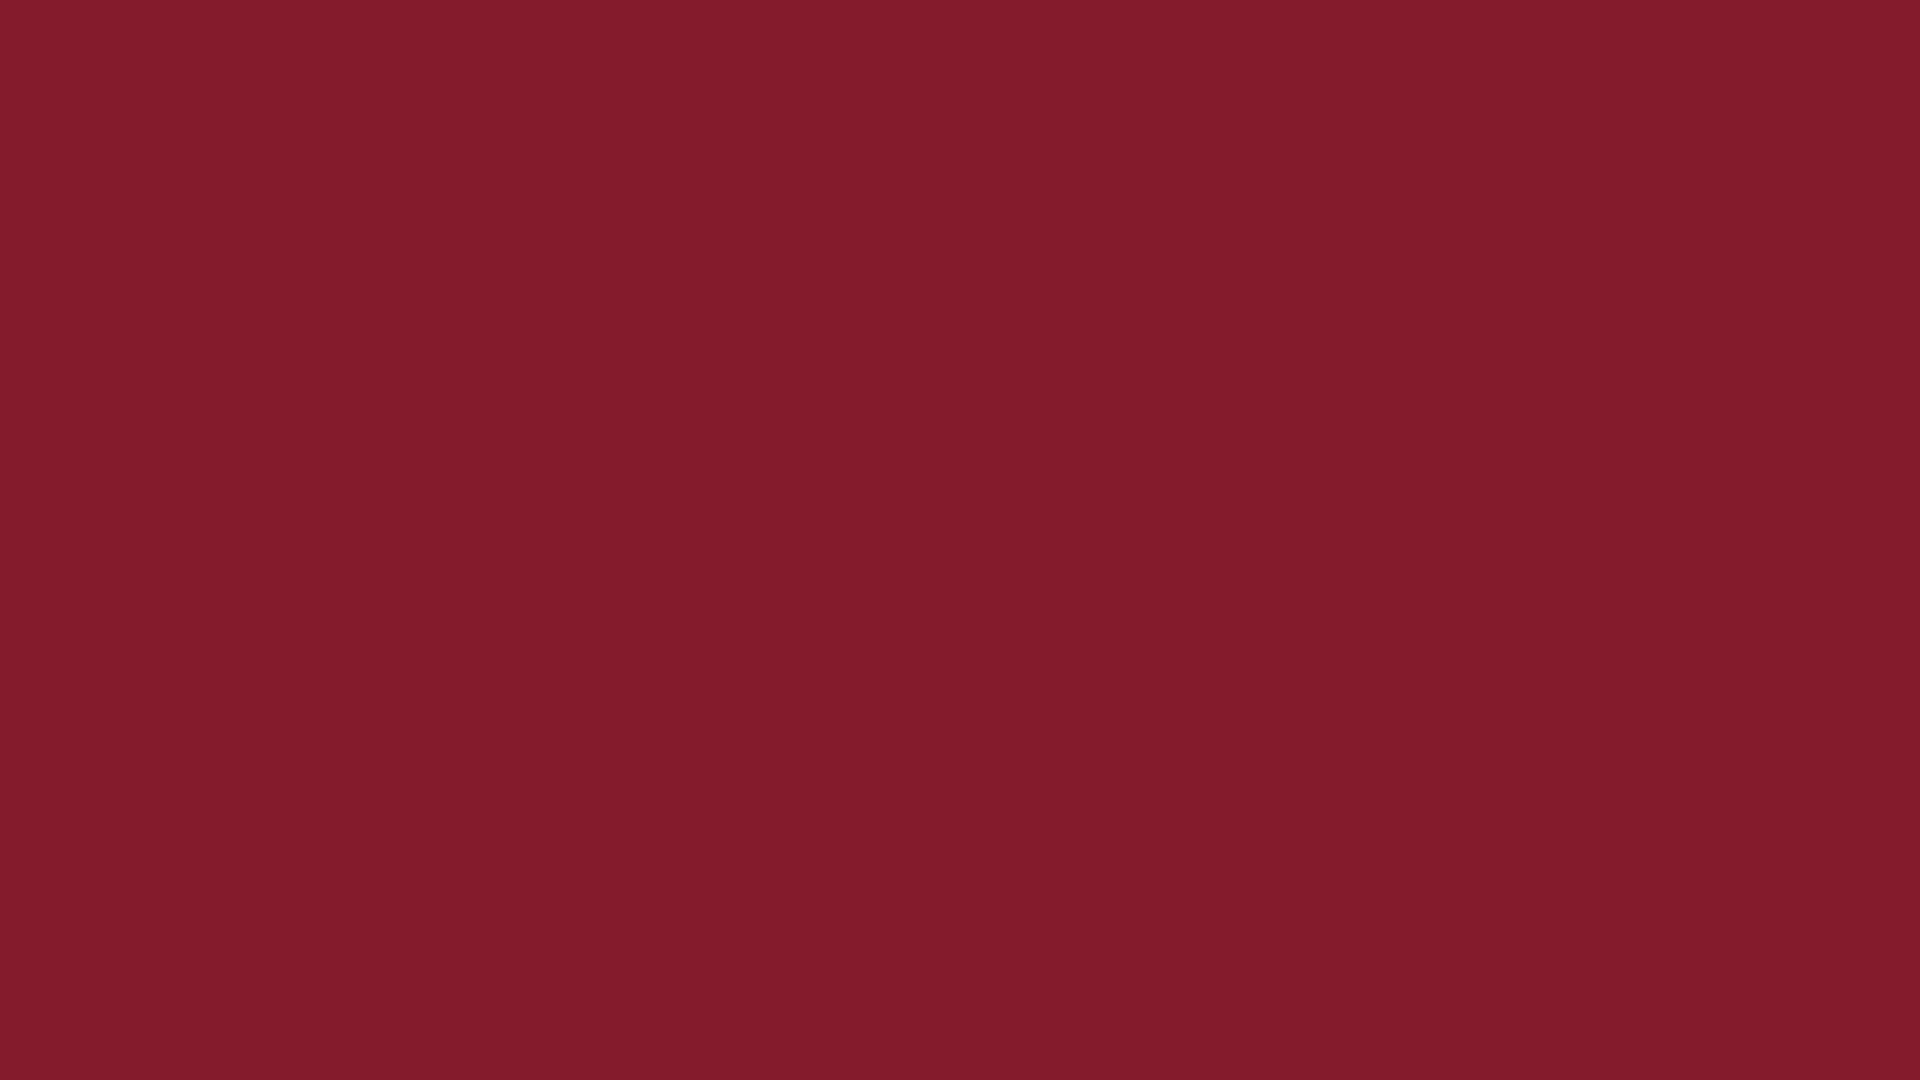 1920x1080 Antique Ruby Solid Color Background